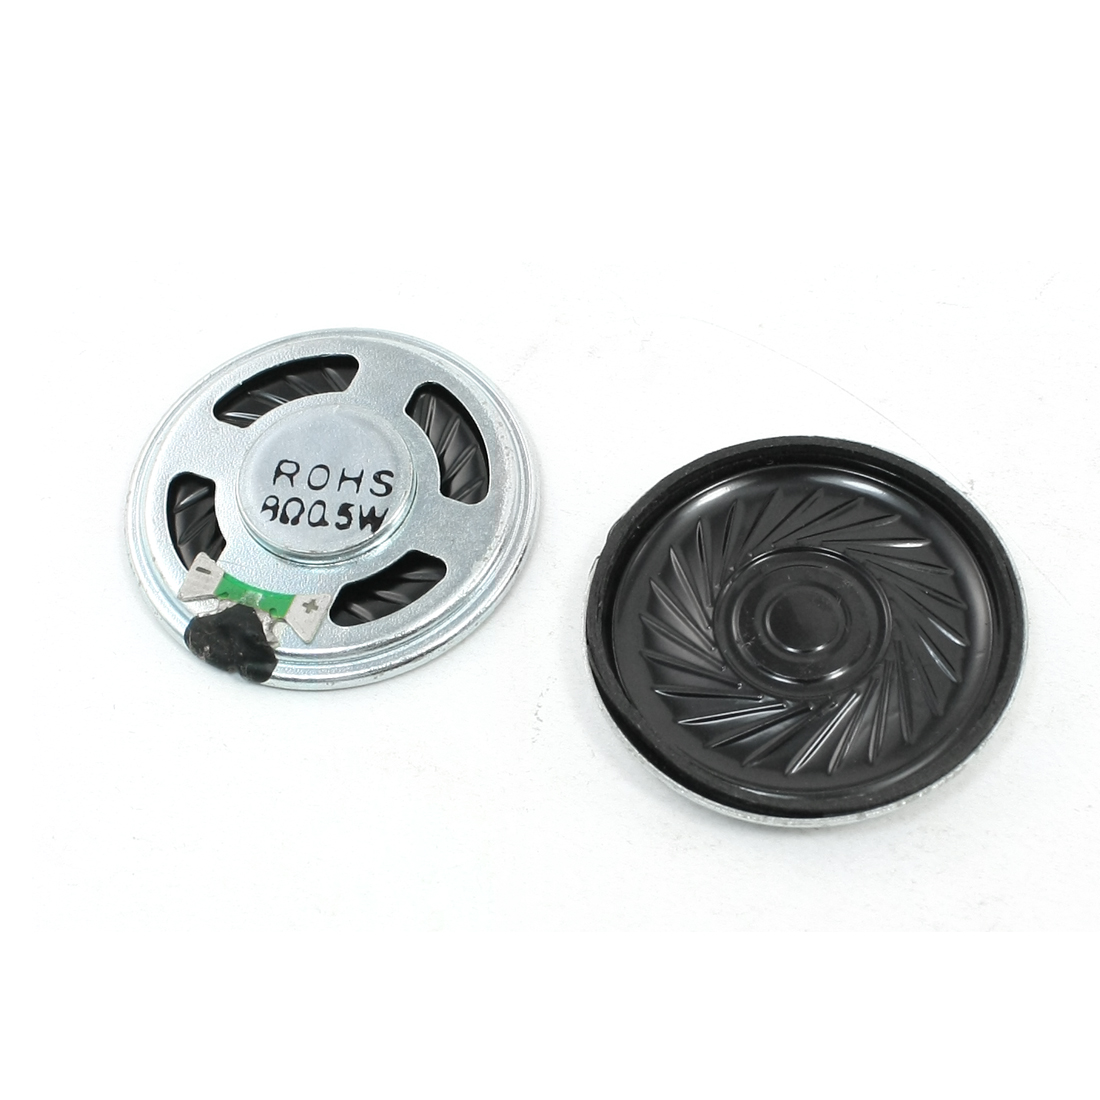 40mm Diameter Round Internal Magnetic Speaker Trumpet Horn 0.5W 8 Ohm 2Pcs